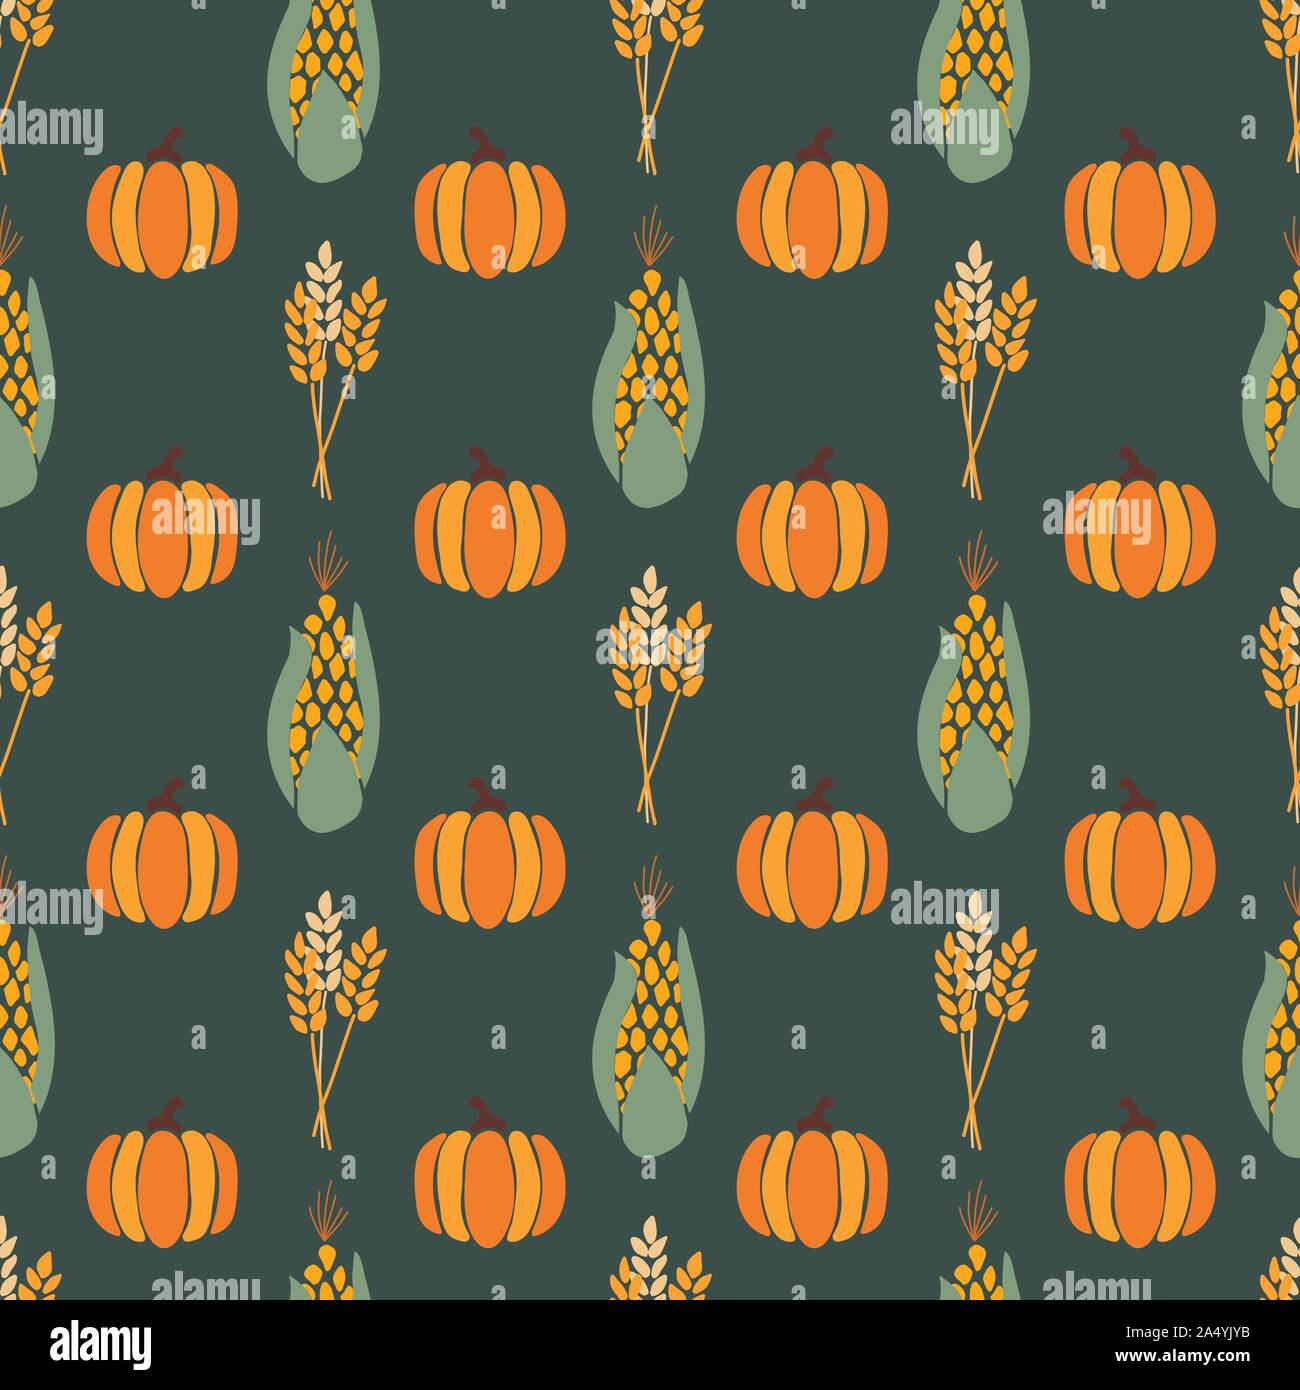 Autumn Corn Plant Crop And Pumpkins On Dark Green Background Seamless Repeating Vector Pattern Fall Harvesting For Thanksgiving Wrapping Paper Stock Vector Image Art Alamy